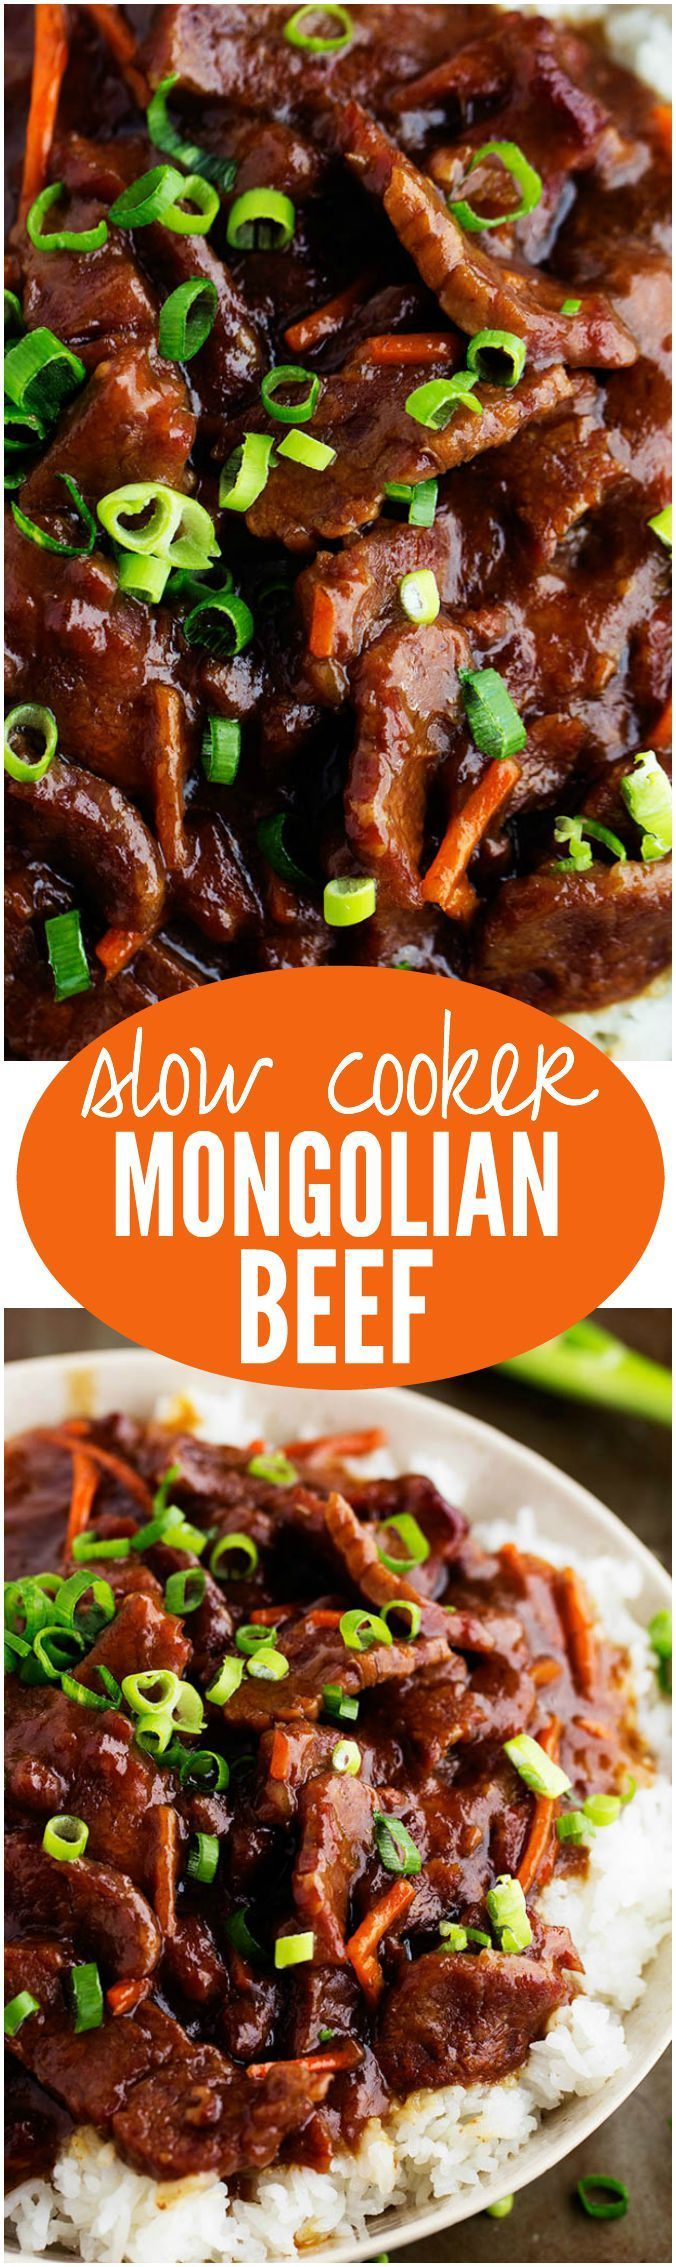 handbag balenciaga This Slow Cooker Mongolian Beef is melt in your mouth tender and has AMAZING flavor  One of the best and easiest things you will ever make